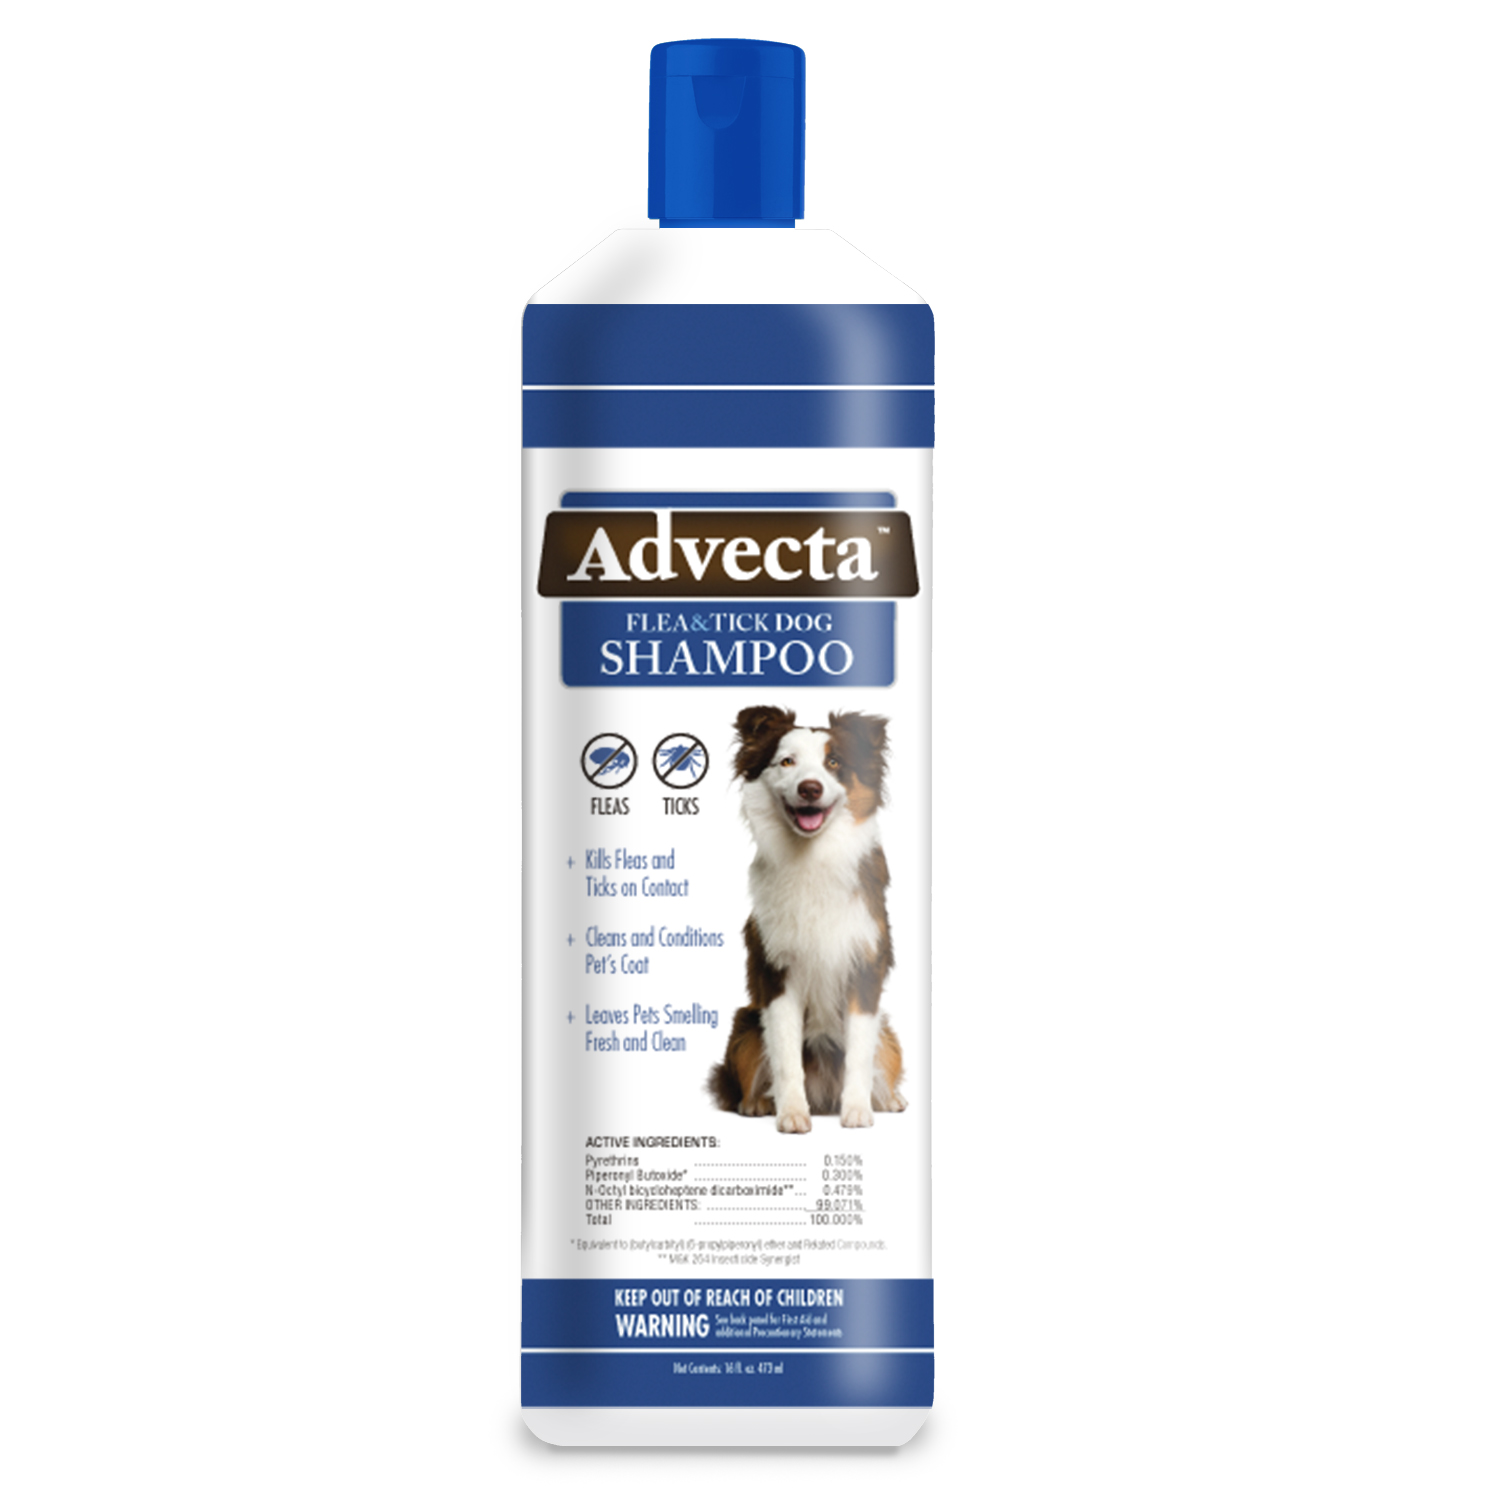 Image of Advecta Flea and Tick â Flea and Tick Shampoo for Dogs